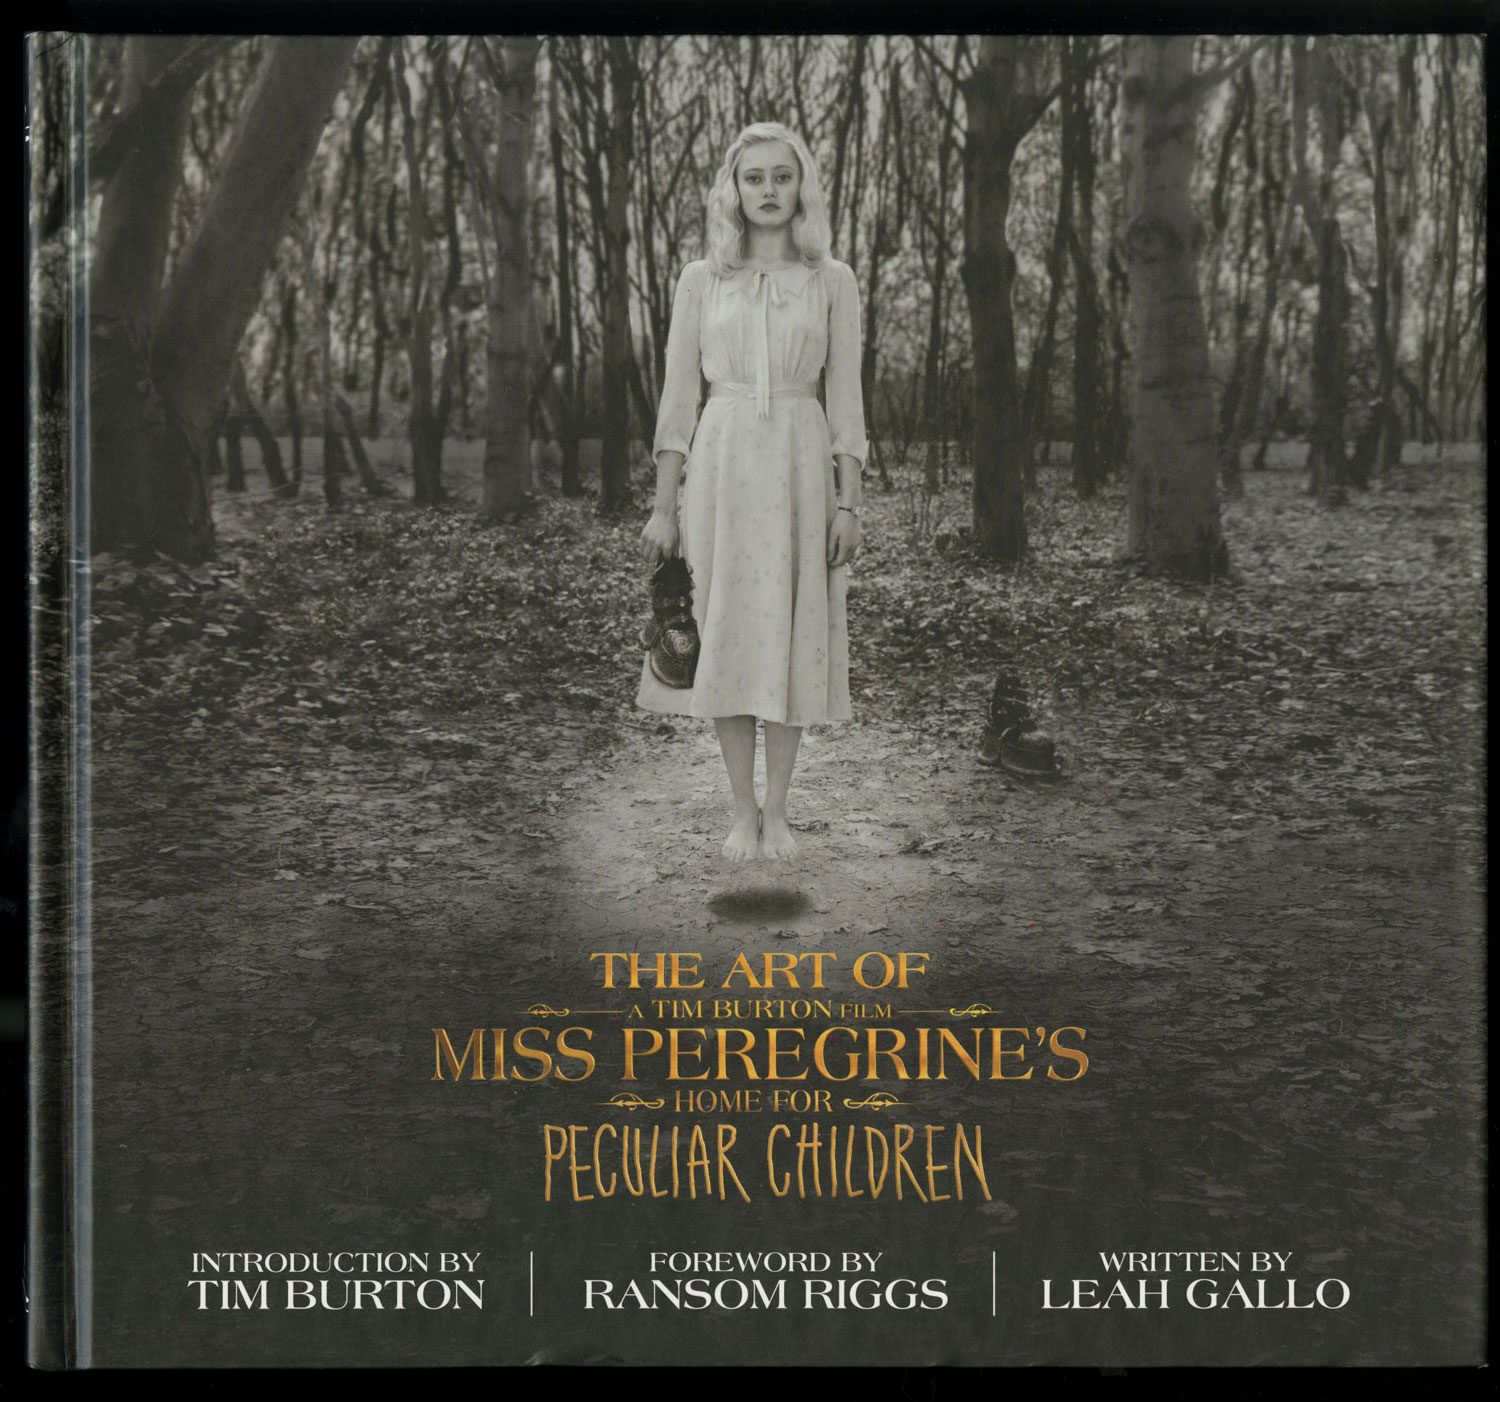 The Art of Miss Peregrine's Home For Peculiar Children - Writer, Editor, Contributing Photographer© 2016 Twentieth Century Fox Film Corporationhttp://www.bookreferees.org/2016/10/24/spotlightreview-the-art-of-miss-peregrines-home-for-peculiar-children-leah-gallo/